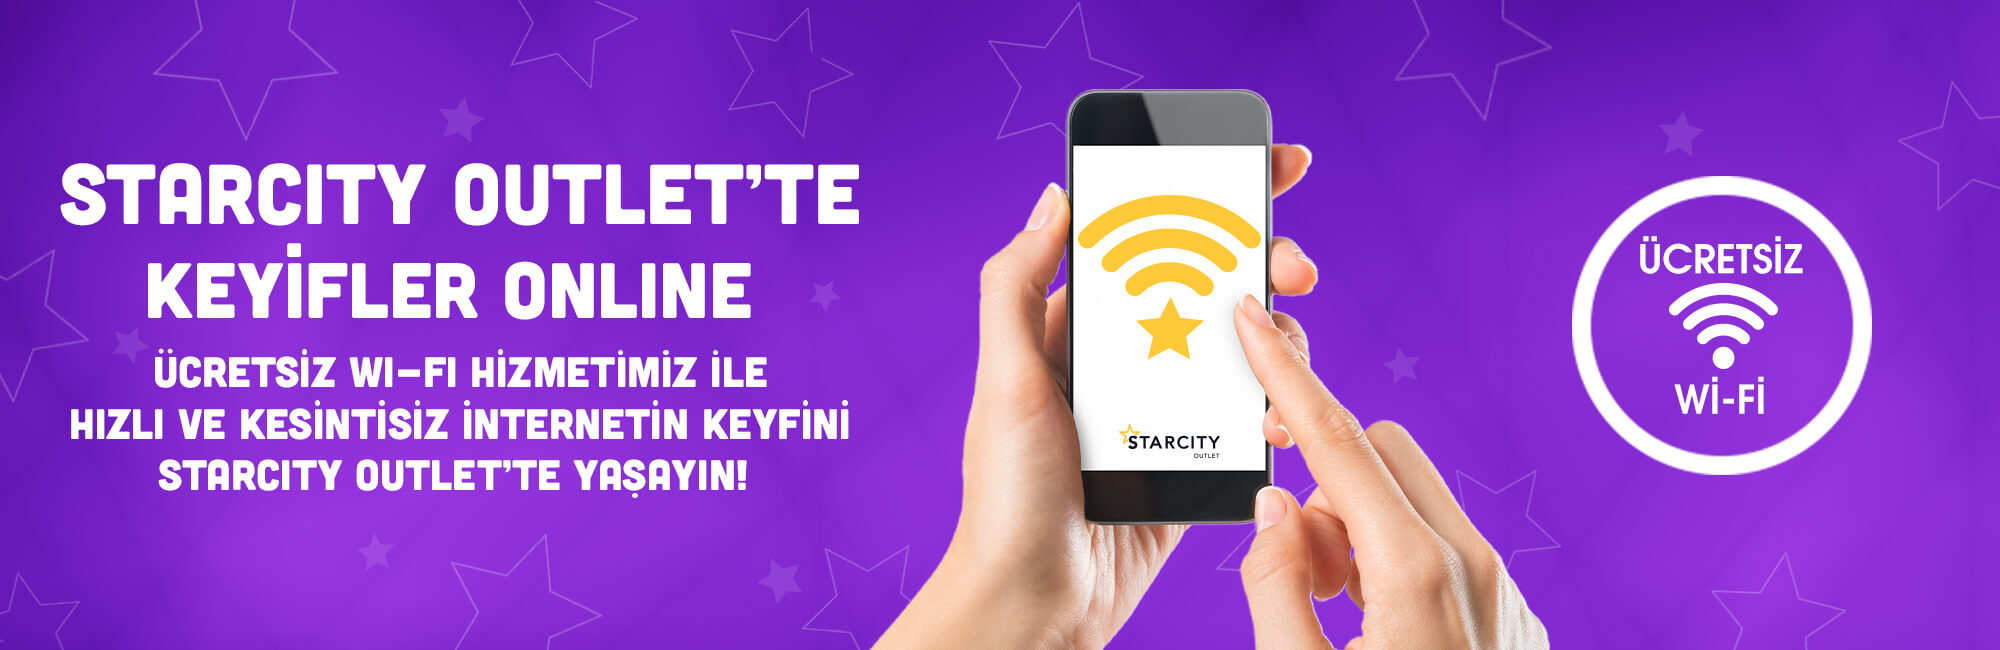 STARCITY - İstanbul Outlet AVM